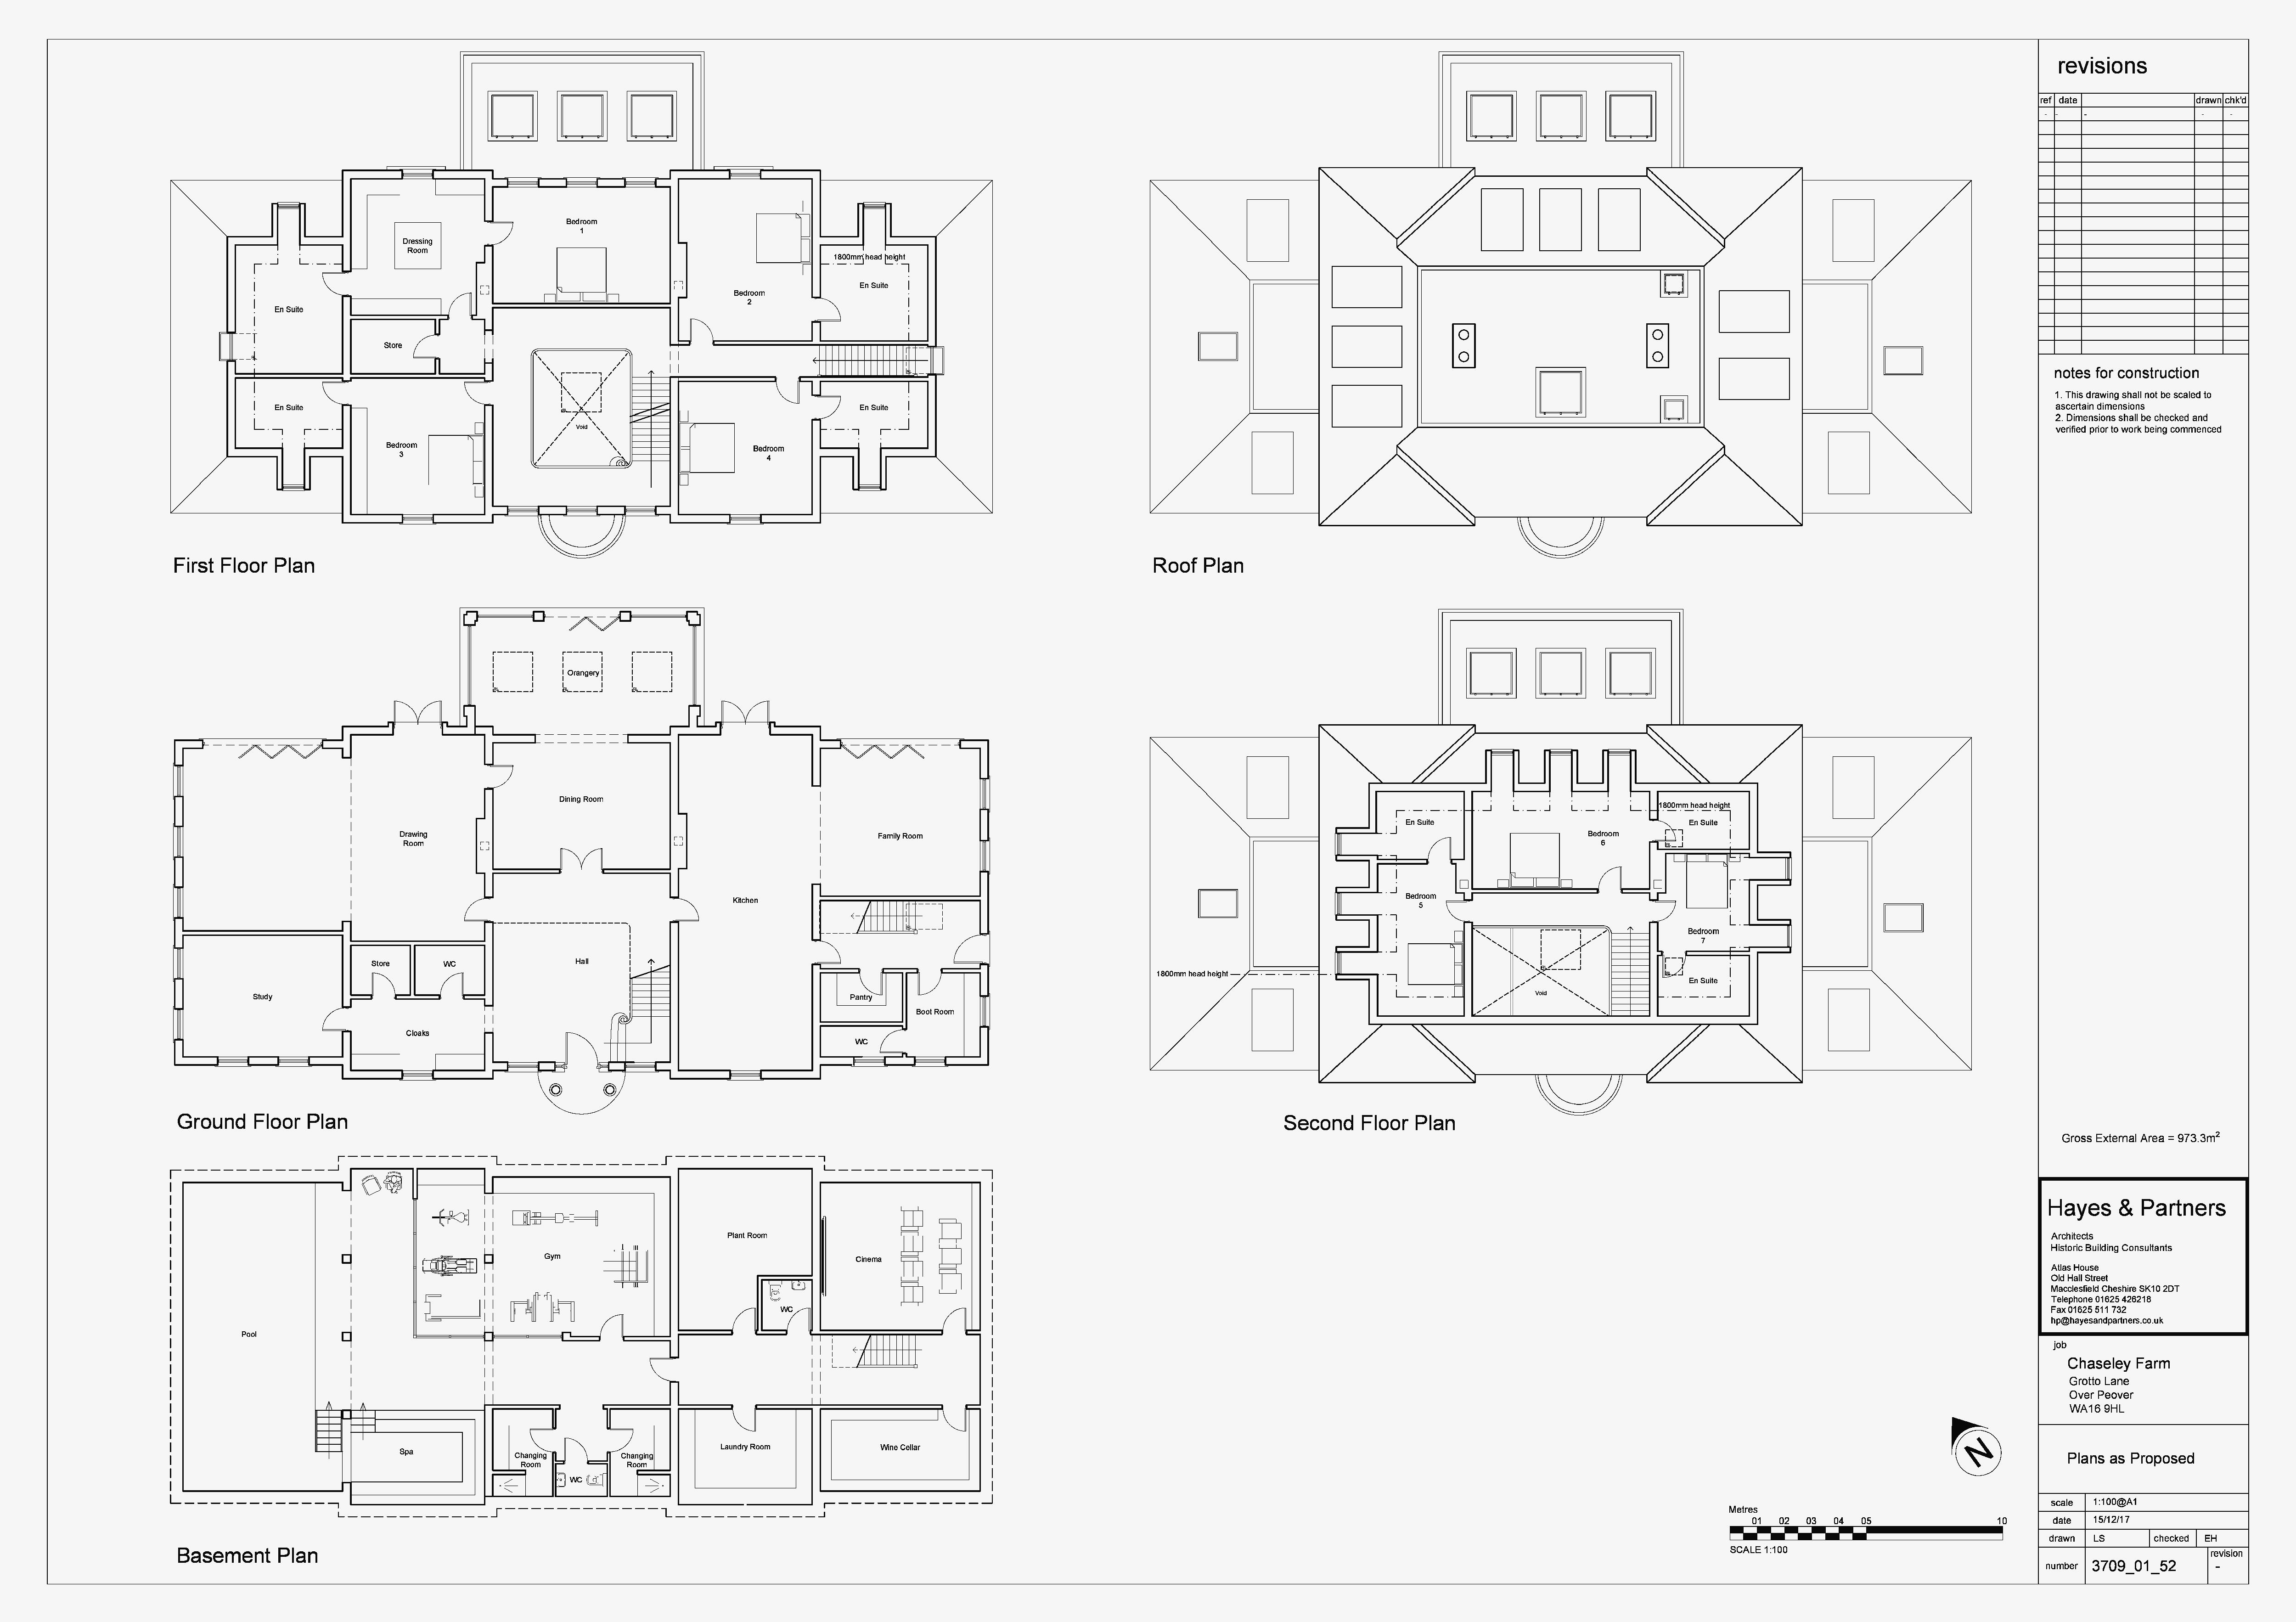 Approved new floorplans